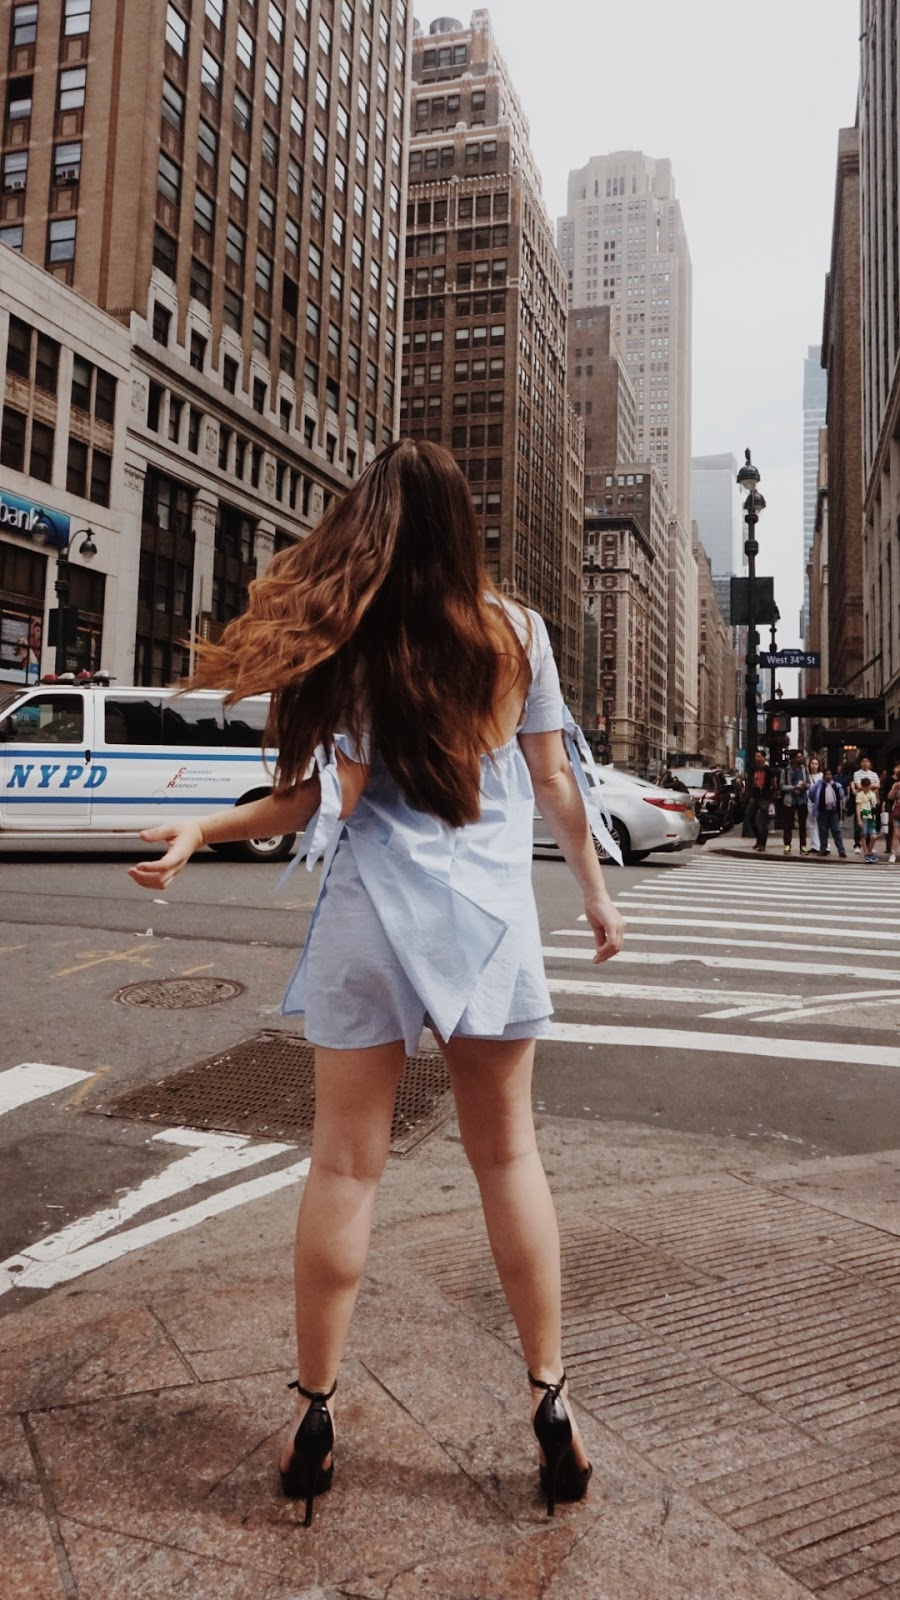 girl standing on NYC street corner of New York